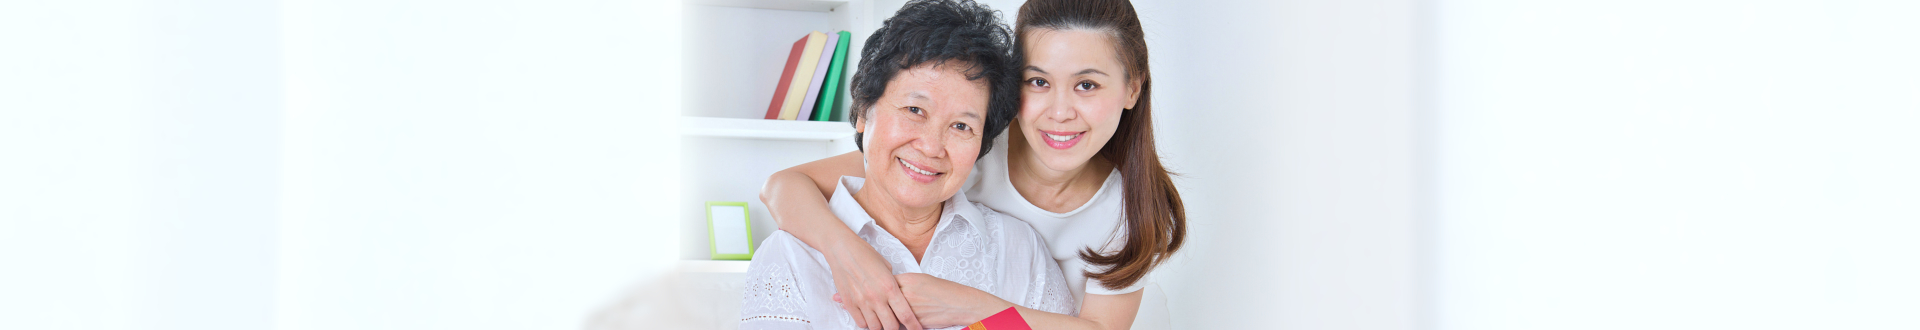 caregiver and disabled senior woman smiling